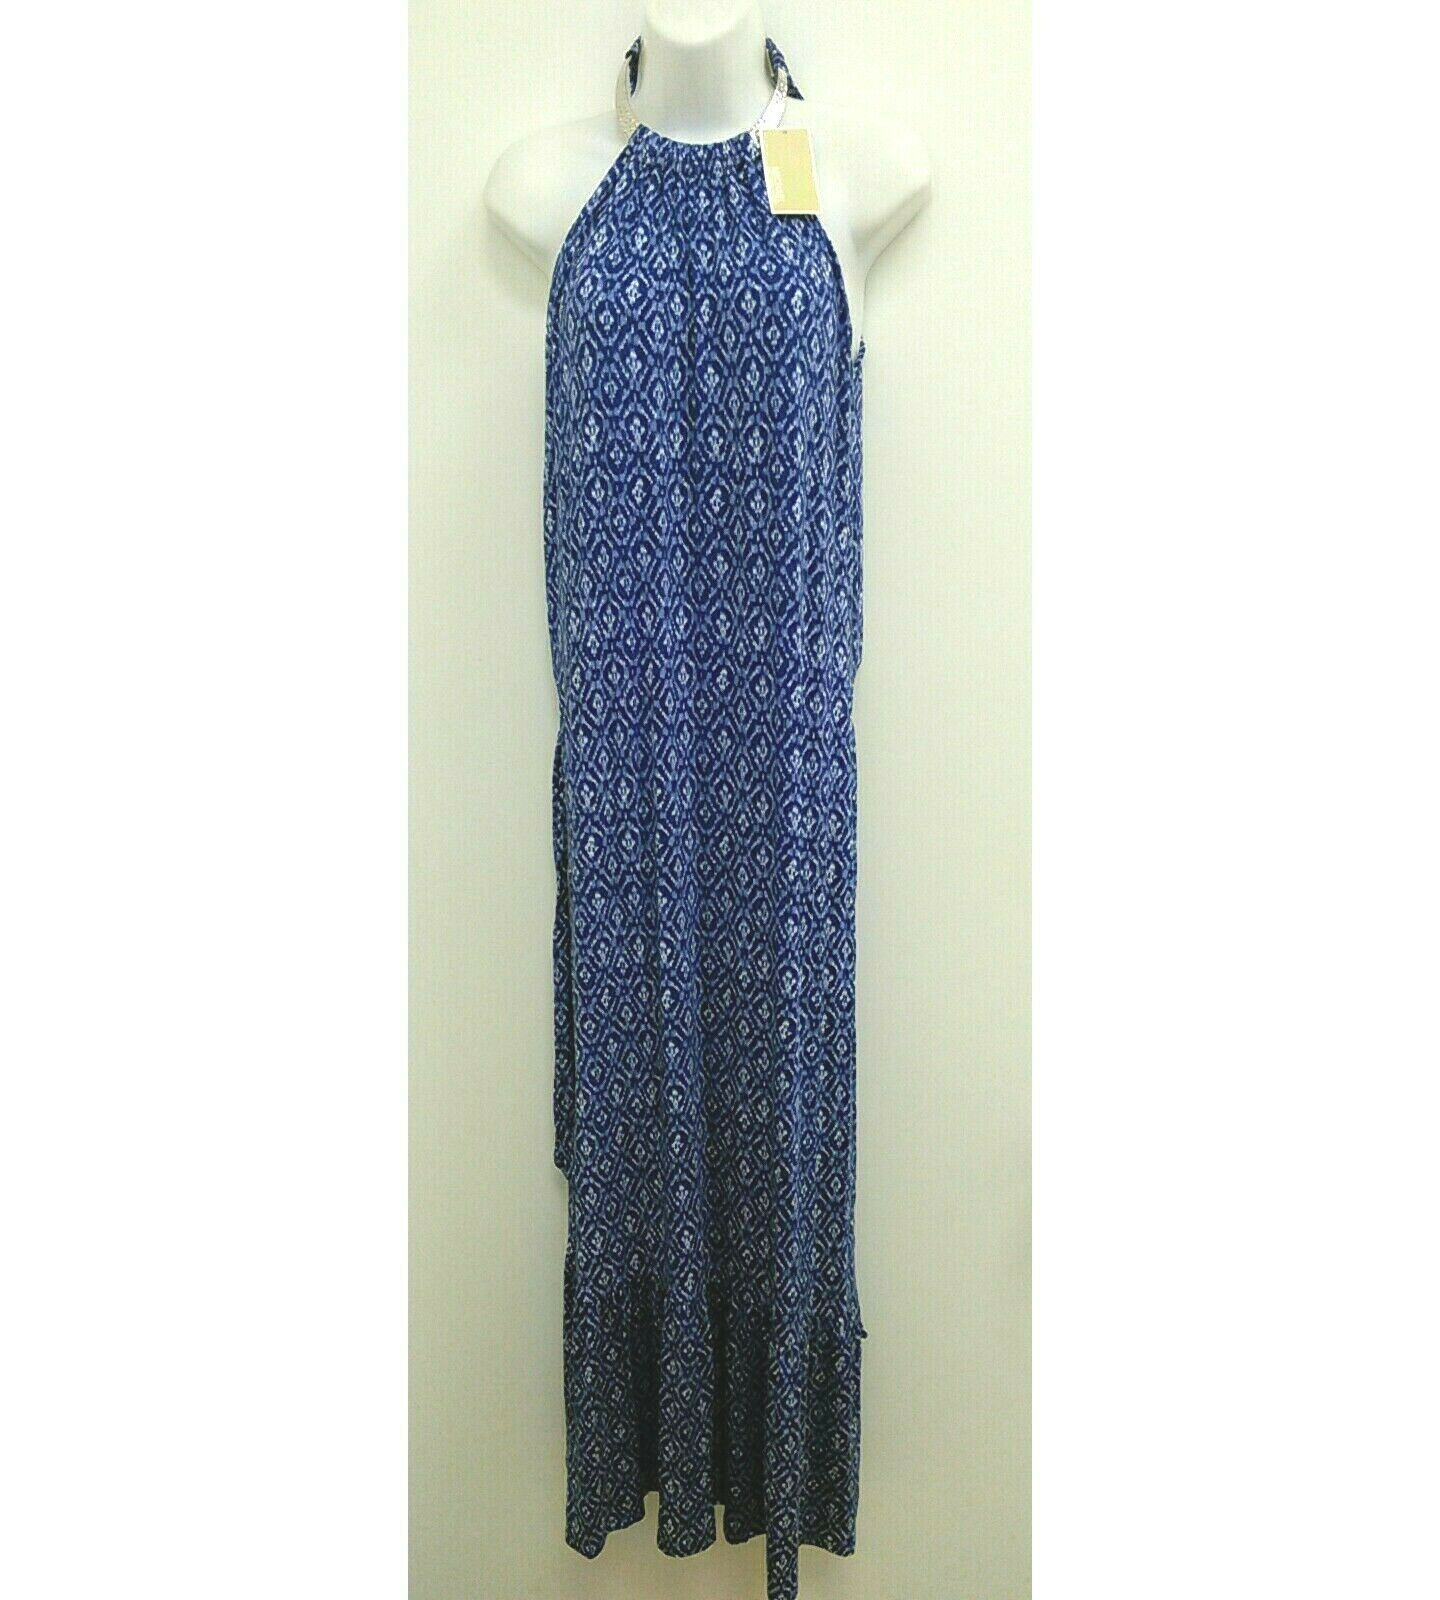 Primary image for NWT Michael Kors Womens Sz Medium Dress Maxi Blue Choker Neck Sleeveless B350